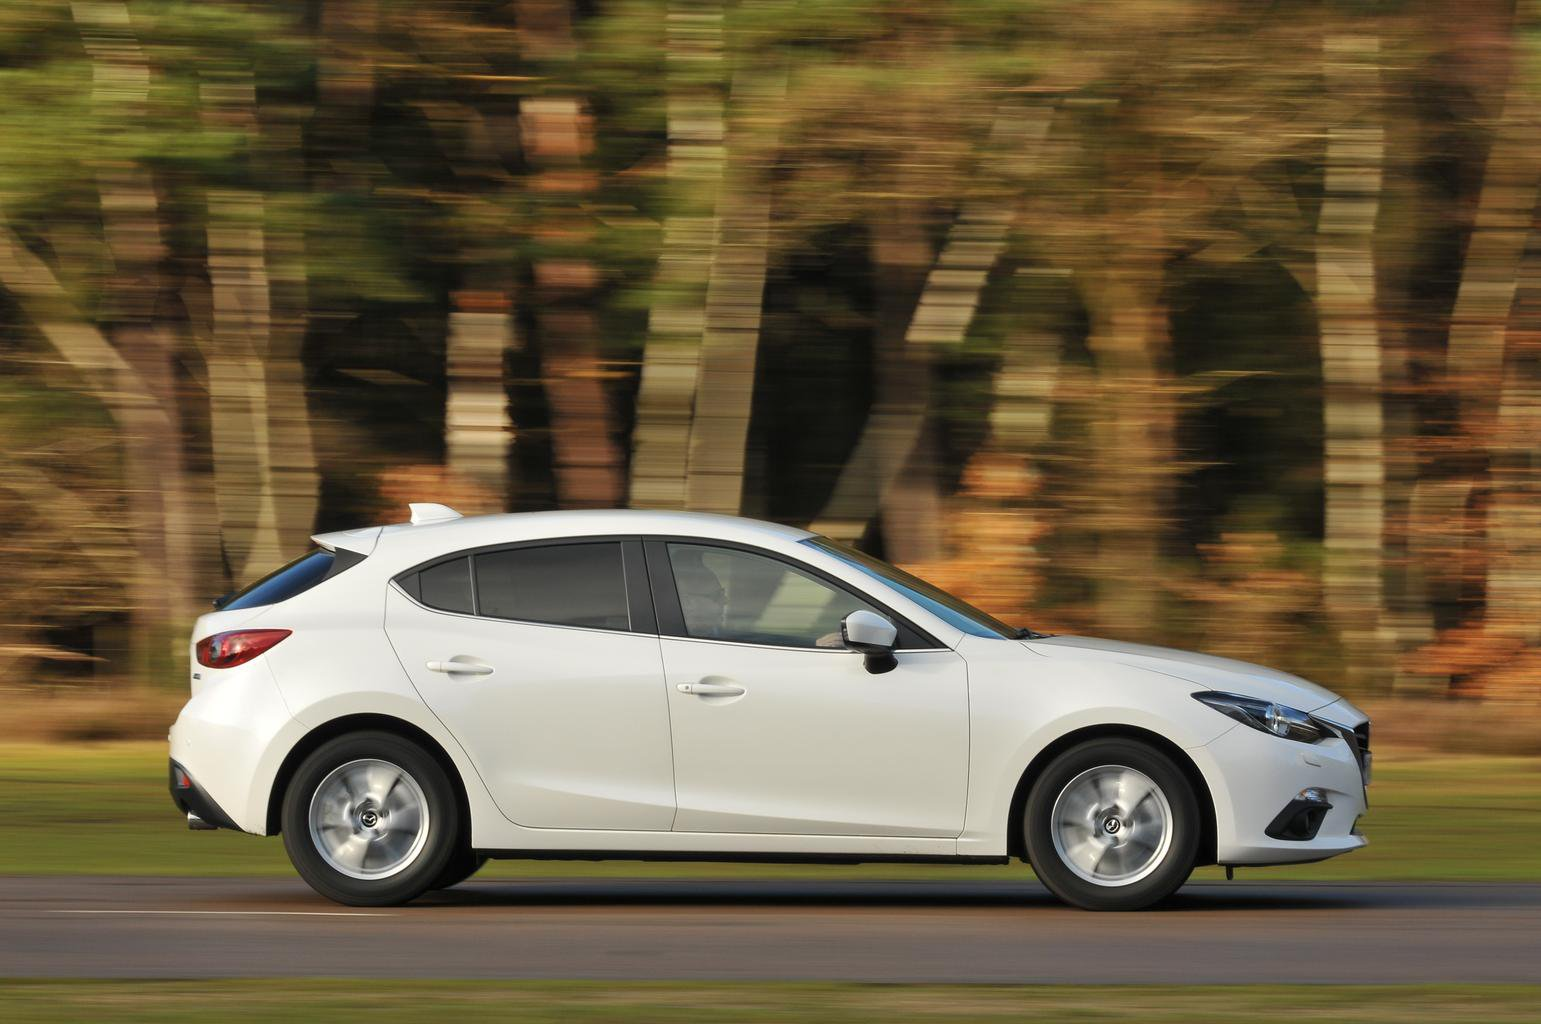 5 reasons to buy a Mazda 3